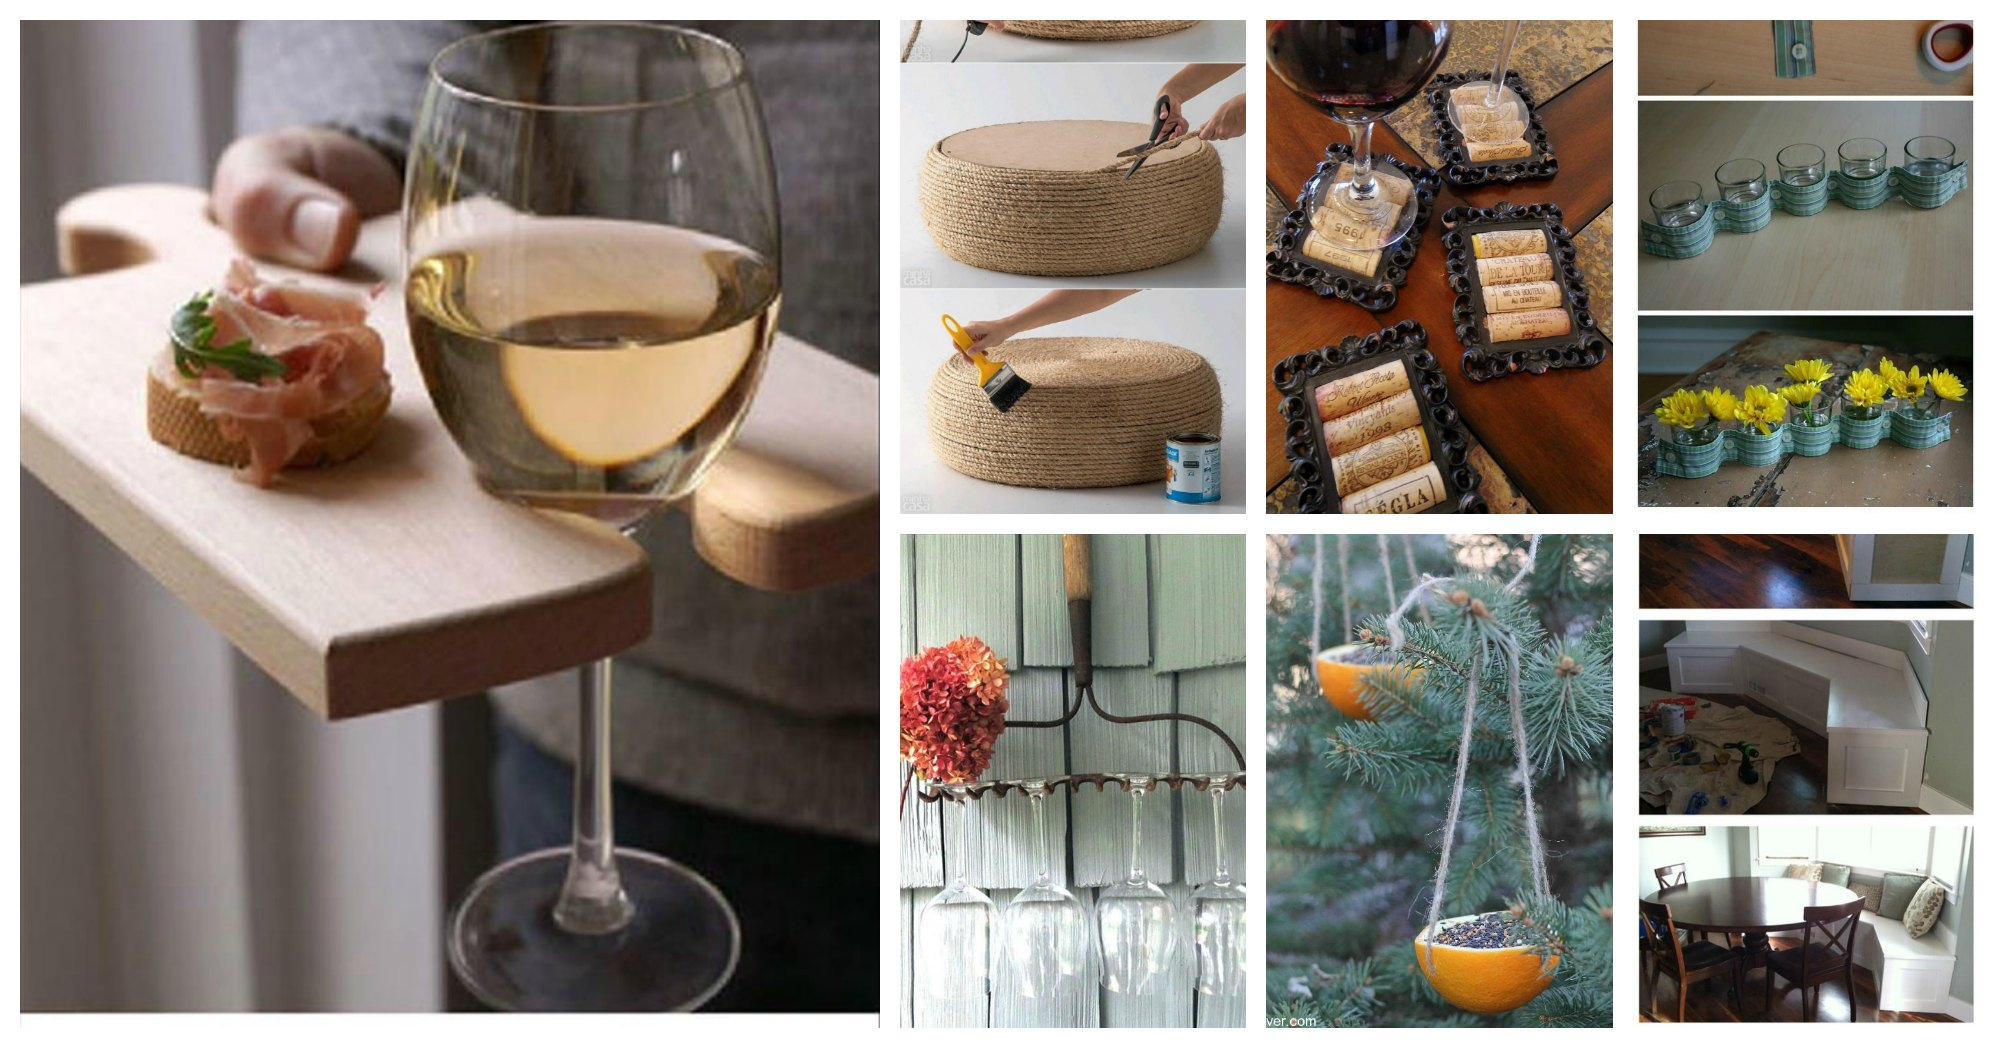 18 Creative And Useful Popular DIY Ideas For Your Home